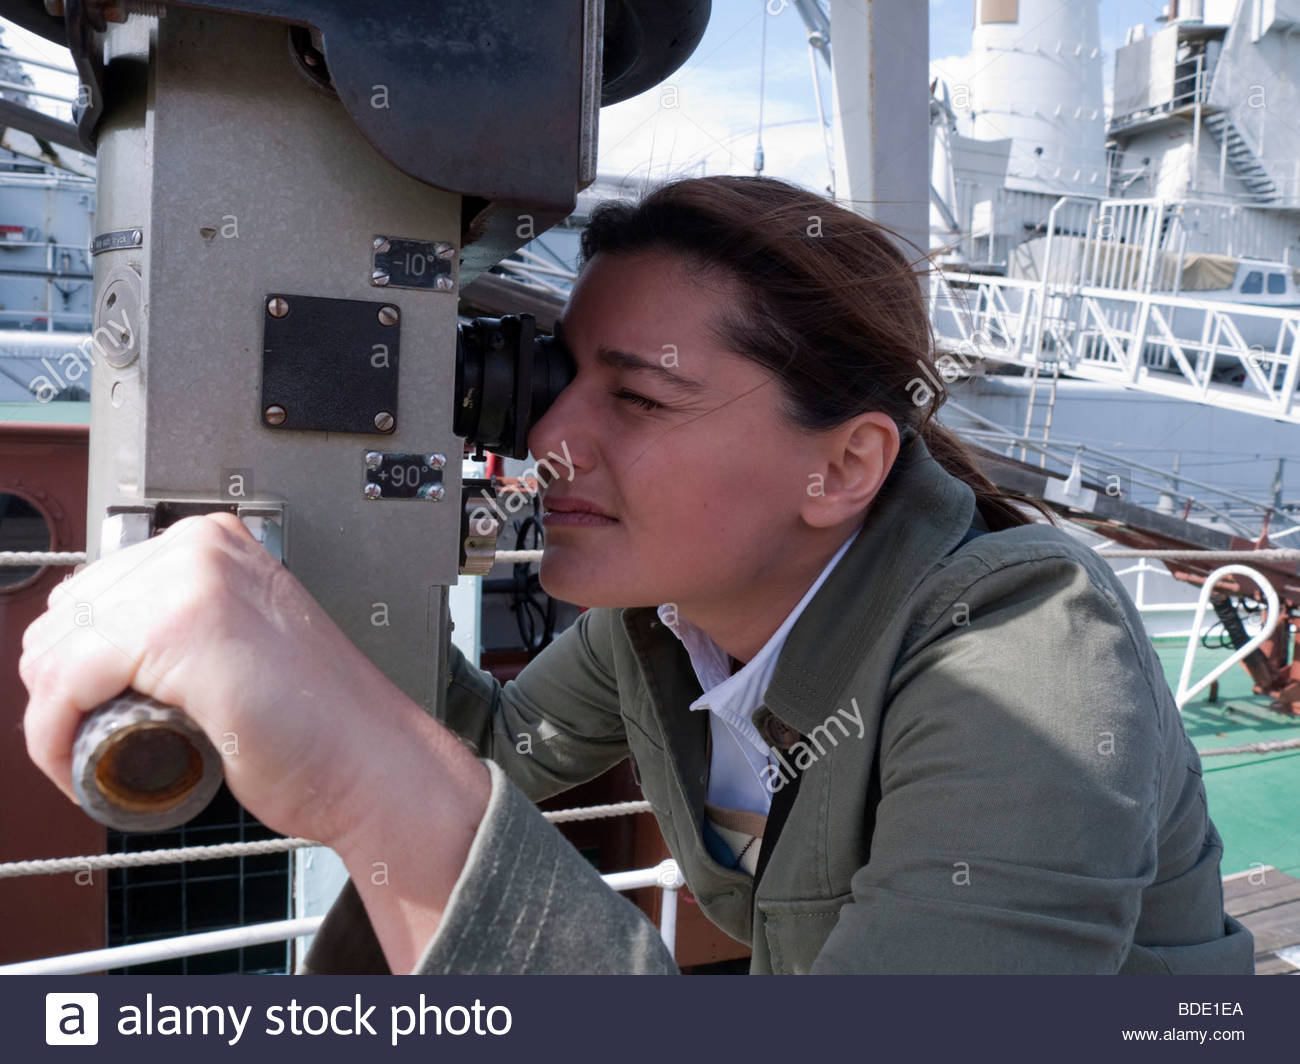 Woman using periscope at Maritime Museum in Gothenburg Sweden - Stock Image